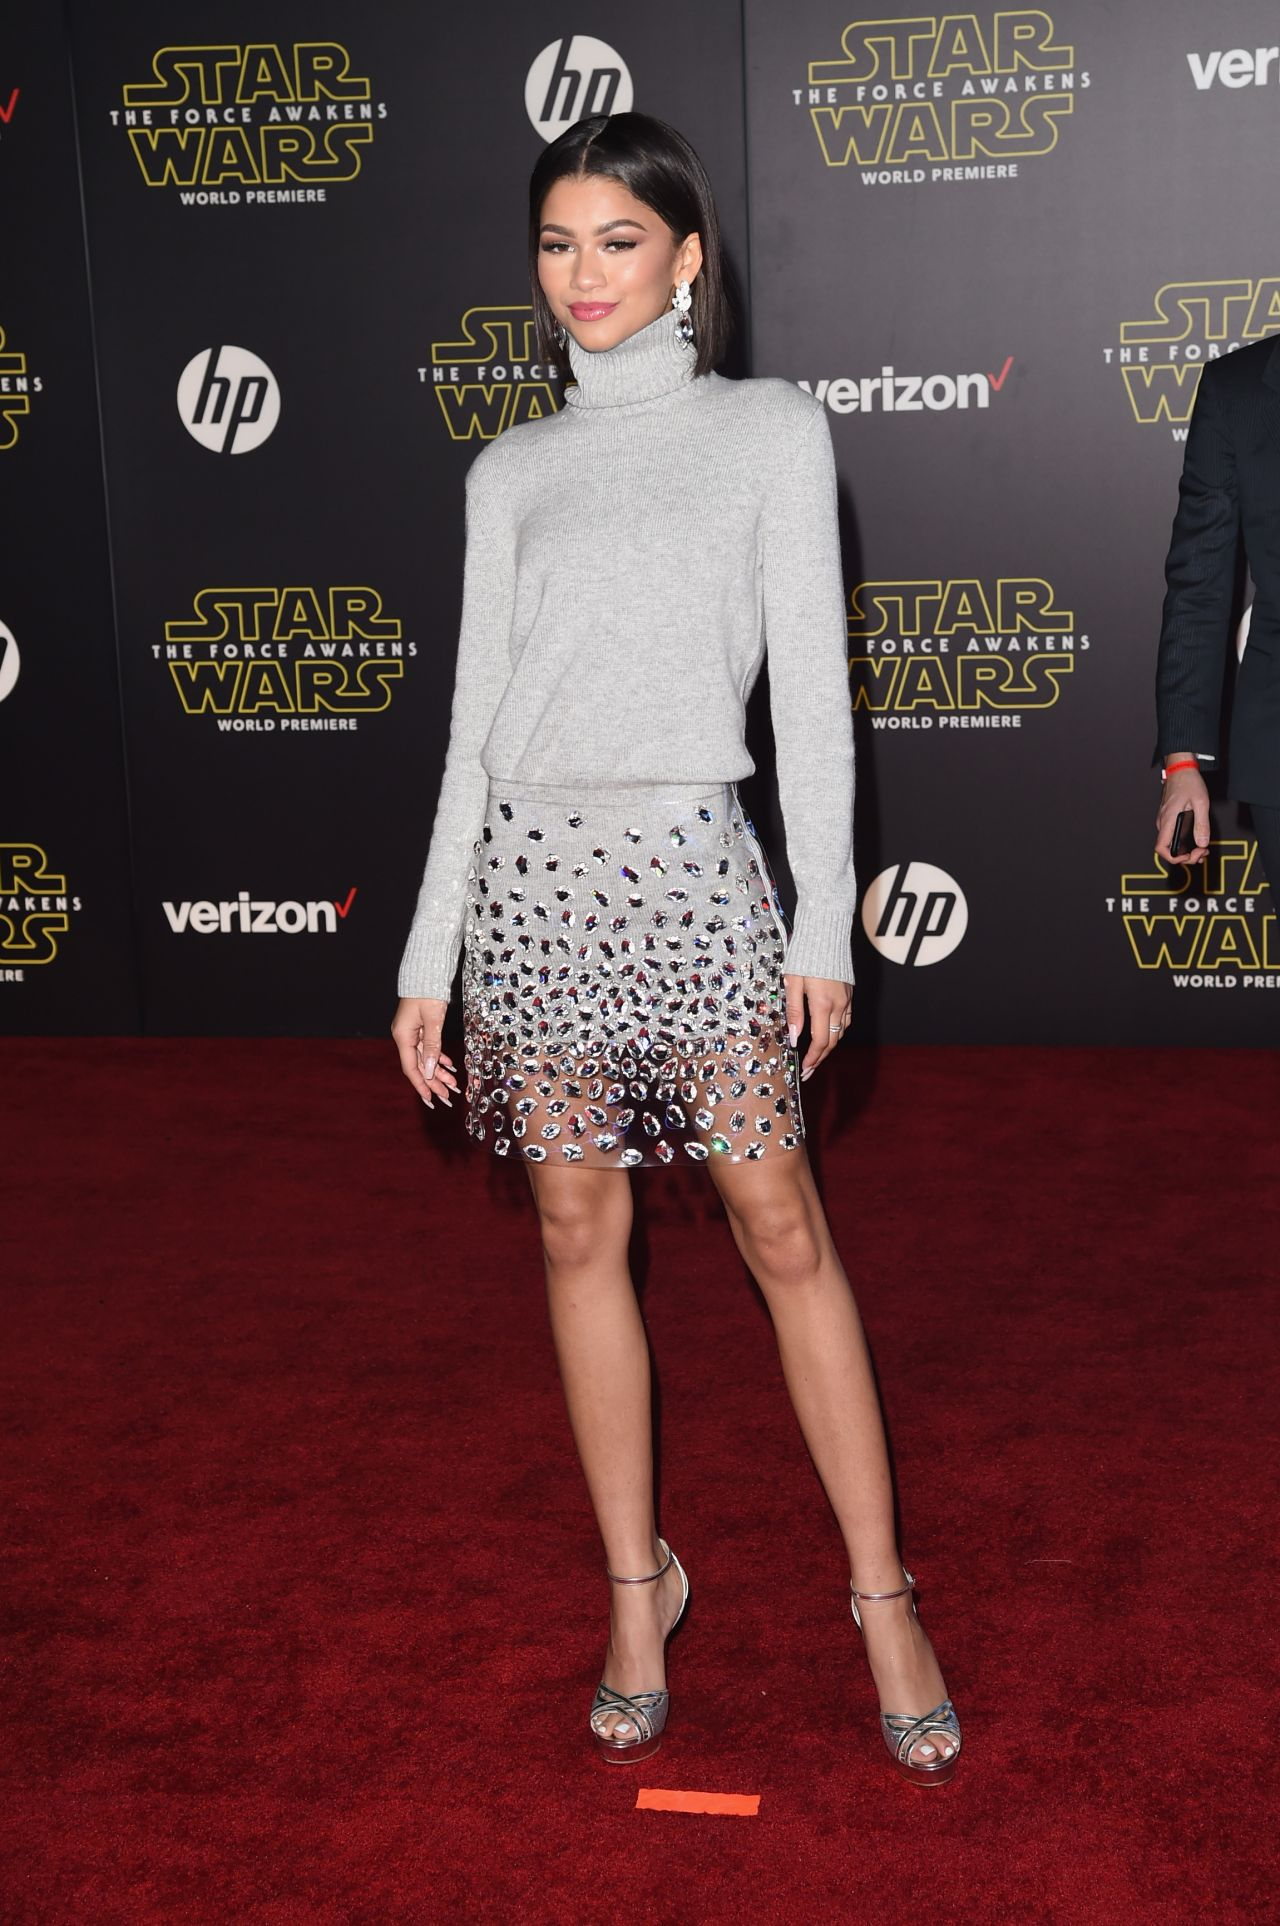 Zendaya Star Wars The Force Awakens Premiere In Hollywood